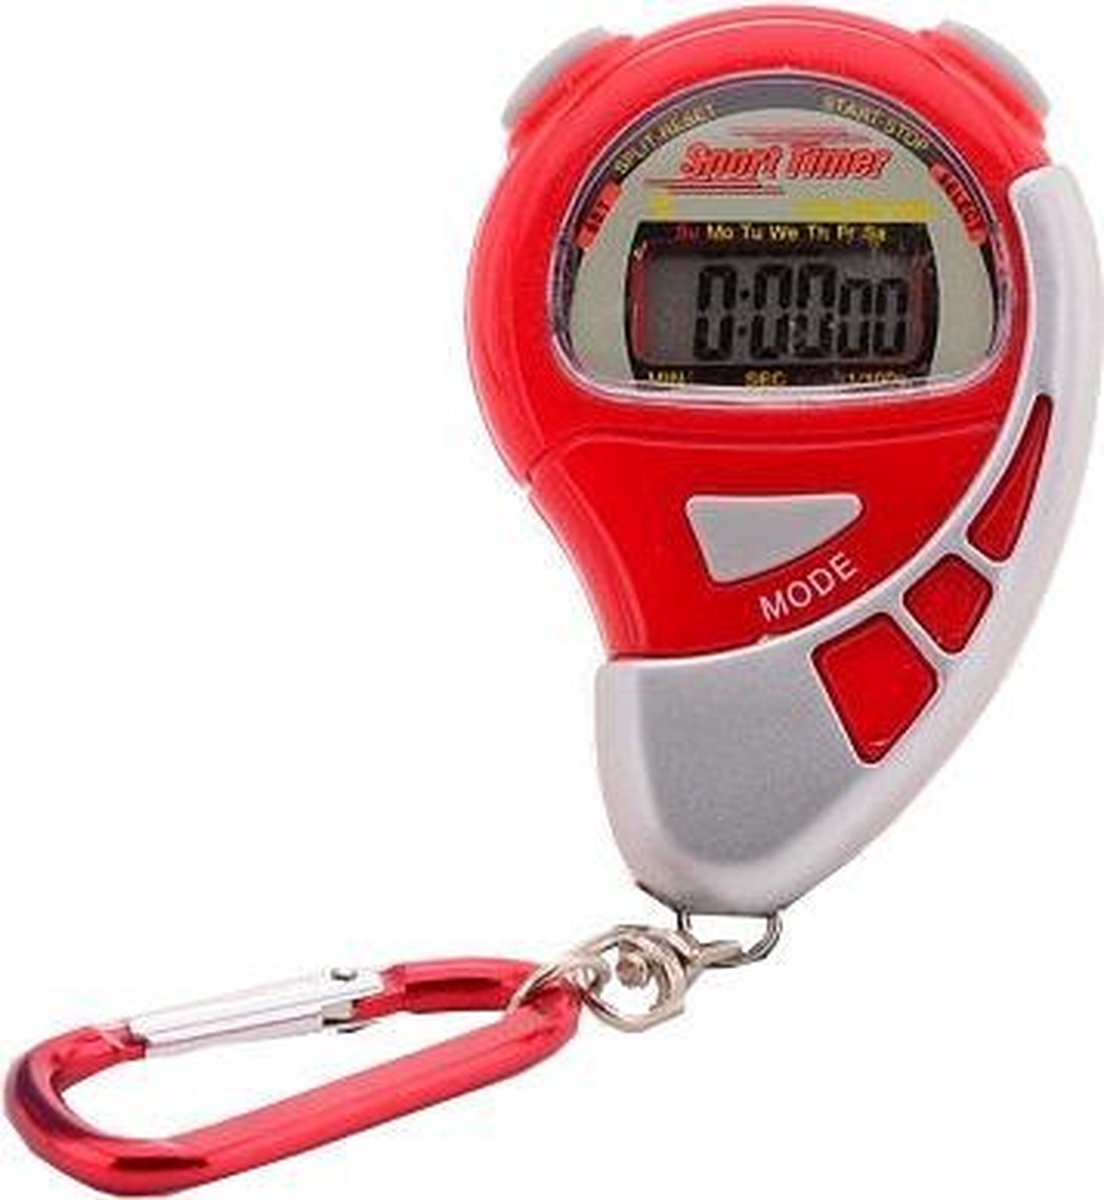 Johntoy Stopwatch Sports Active Met Alarm Rood - Johntoy